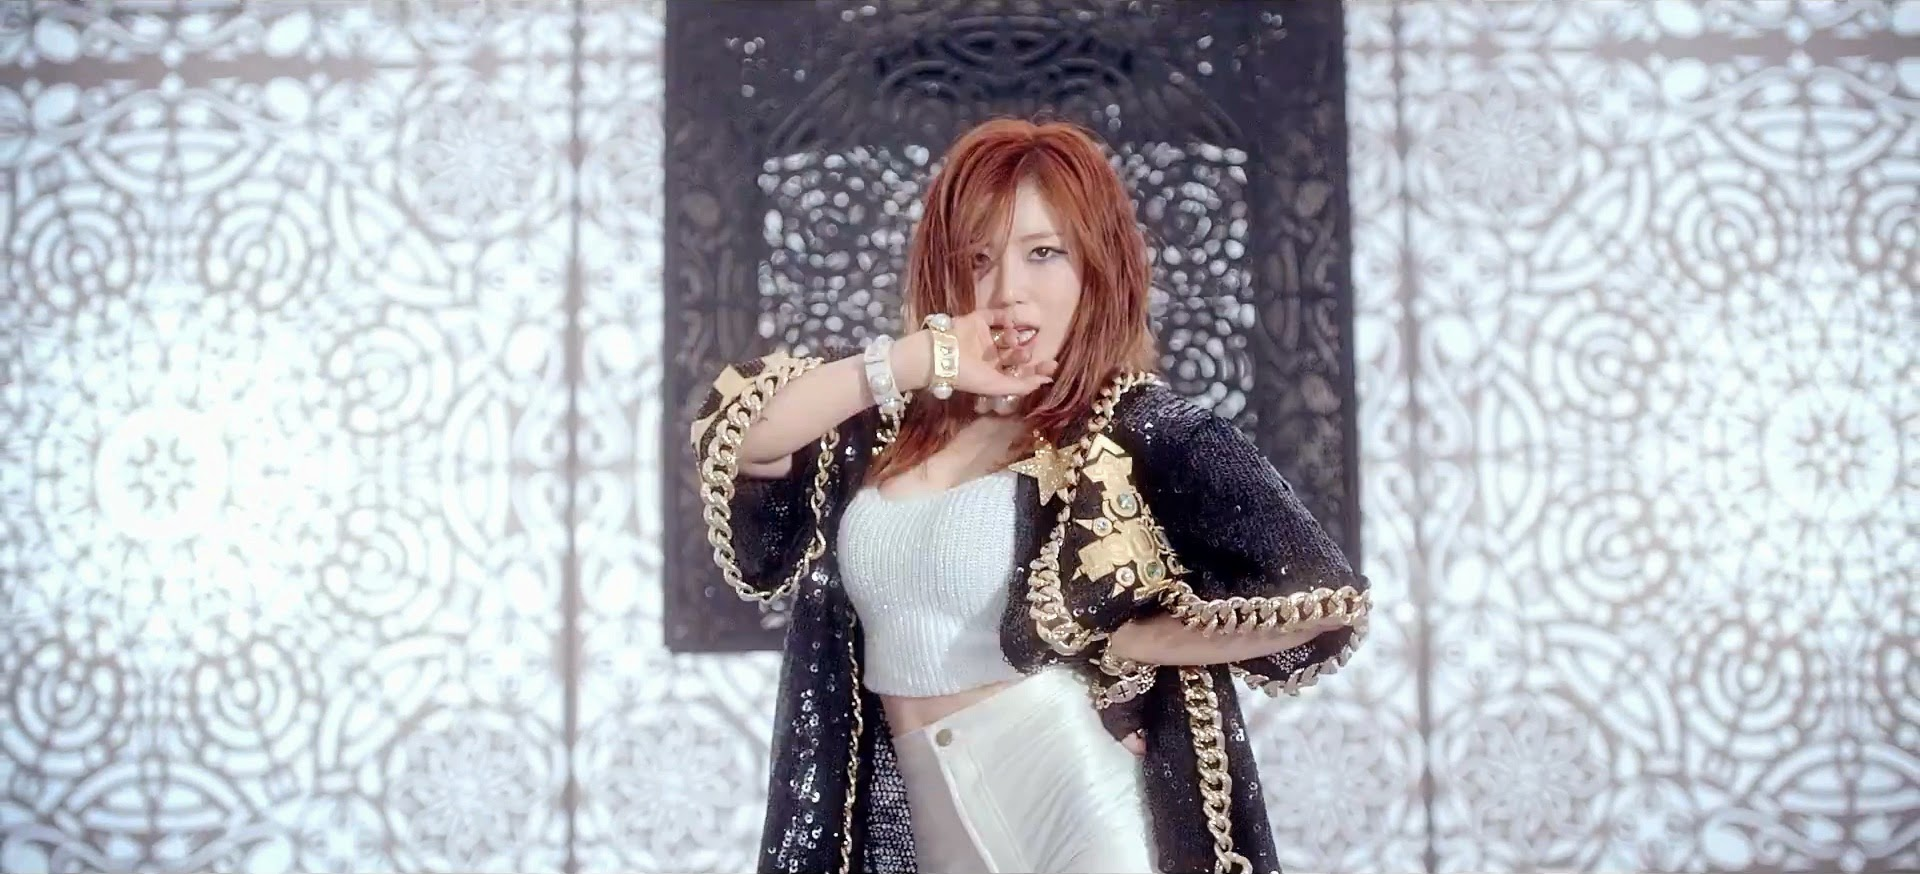 hyosung single album good night kiss mv i say. Black Bedroom Furniture Sets. Home Design Ideas